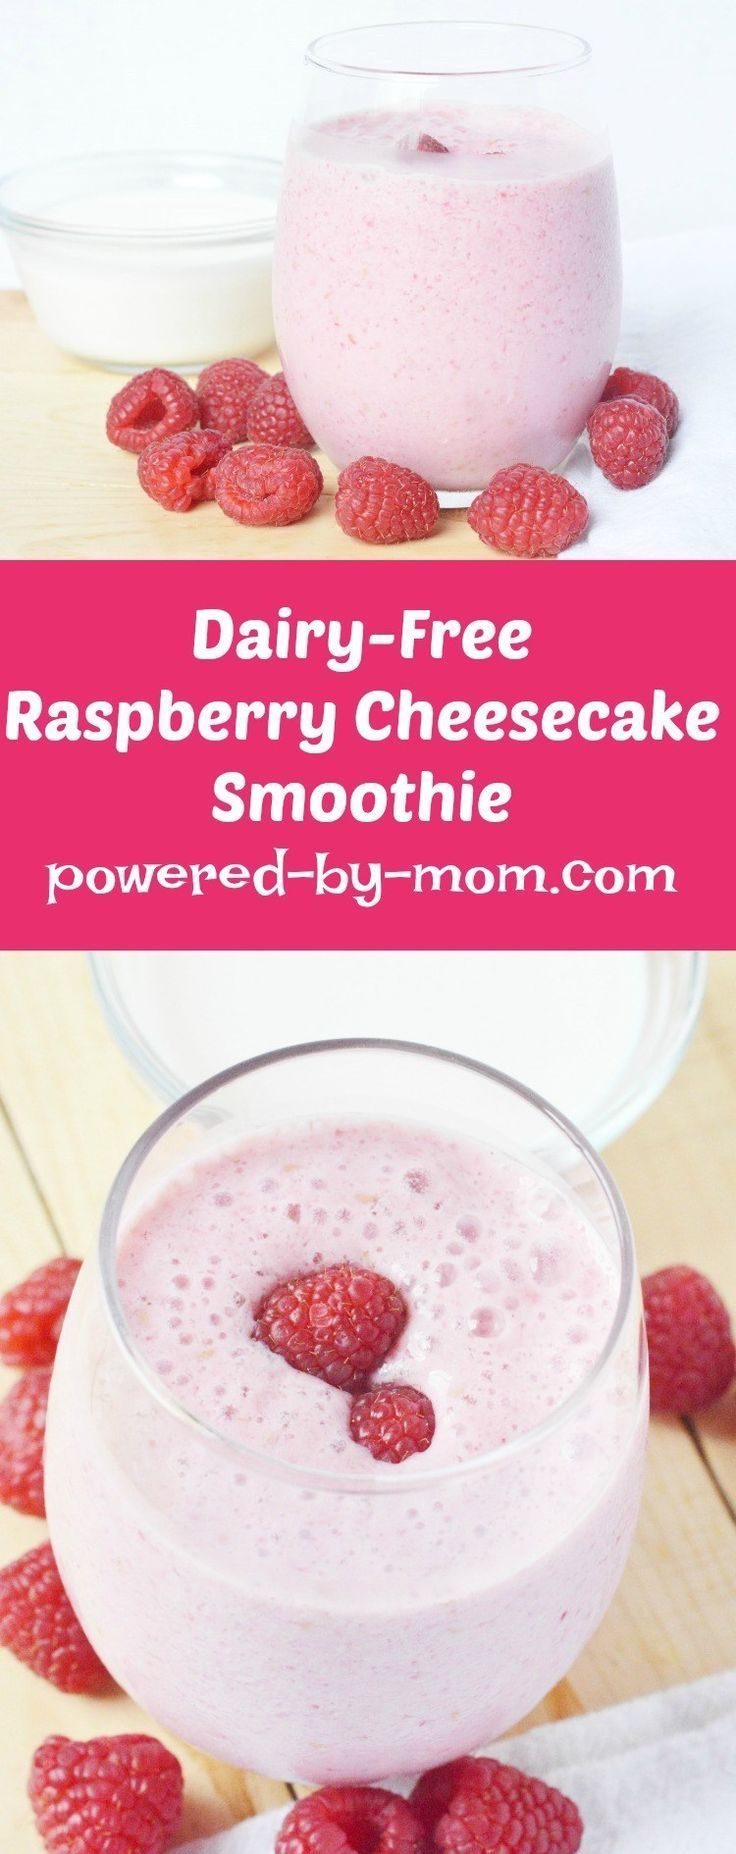 Healthy Smoothies2 2 Dairy2 2 Free Raspberry Cheesecake #dairyfreesmoothie